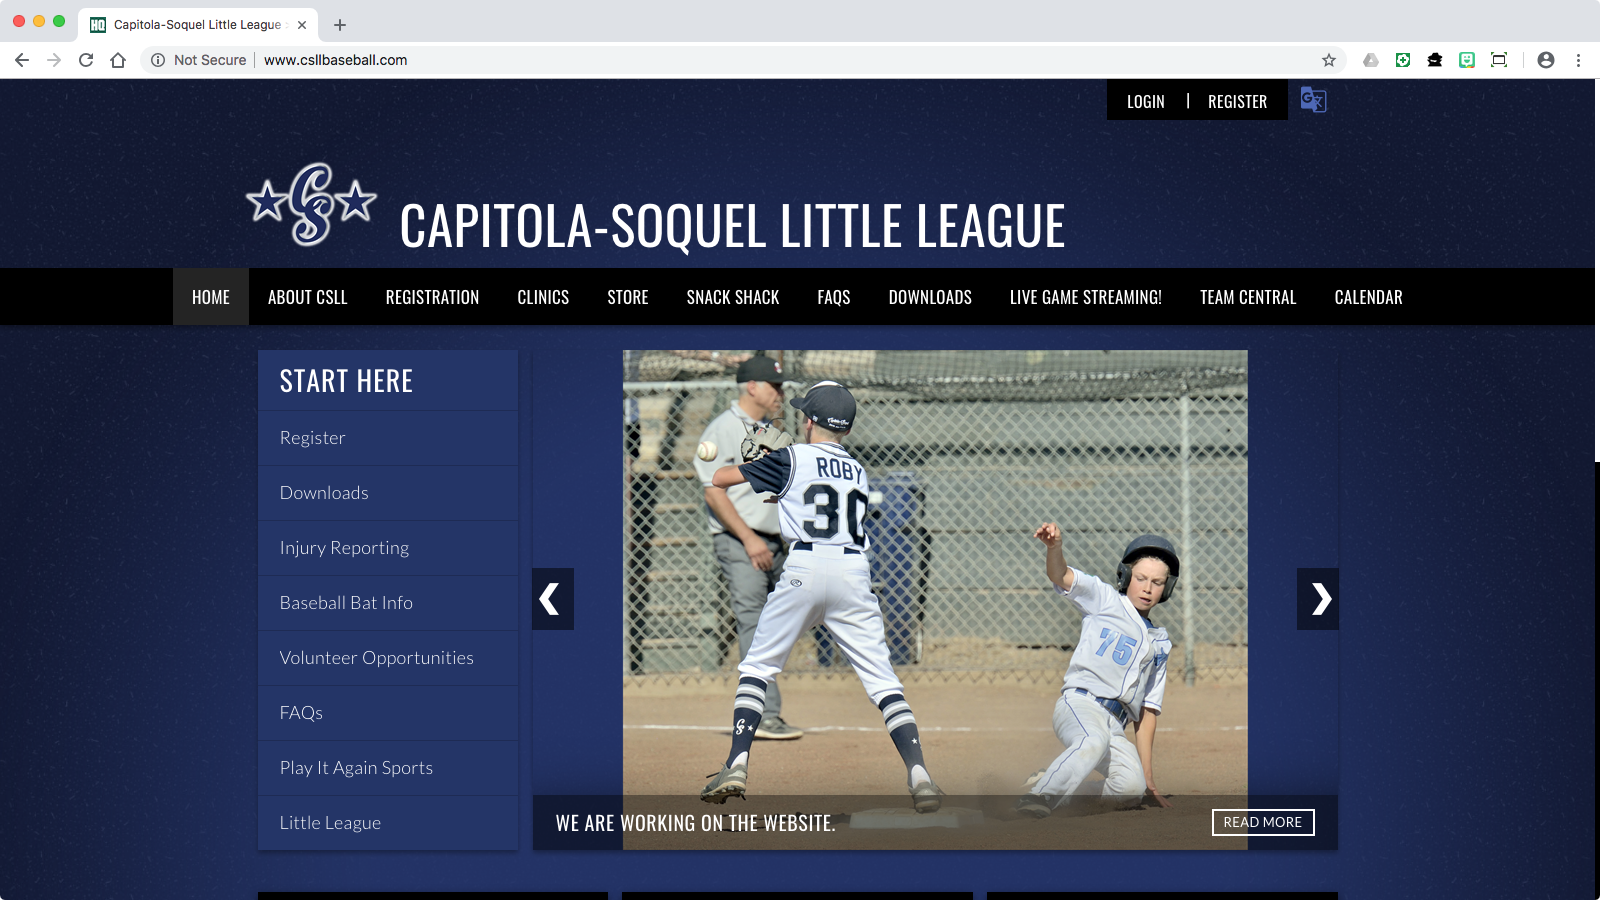 Capitola-Soquel Little League